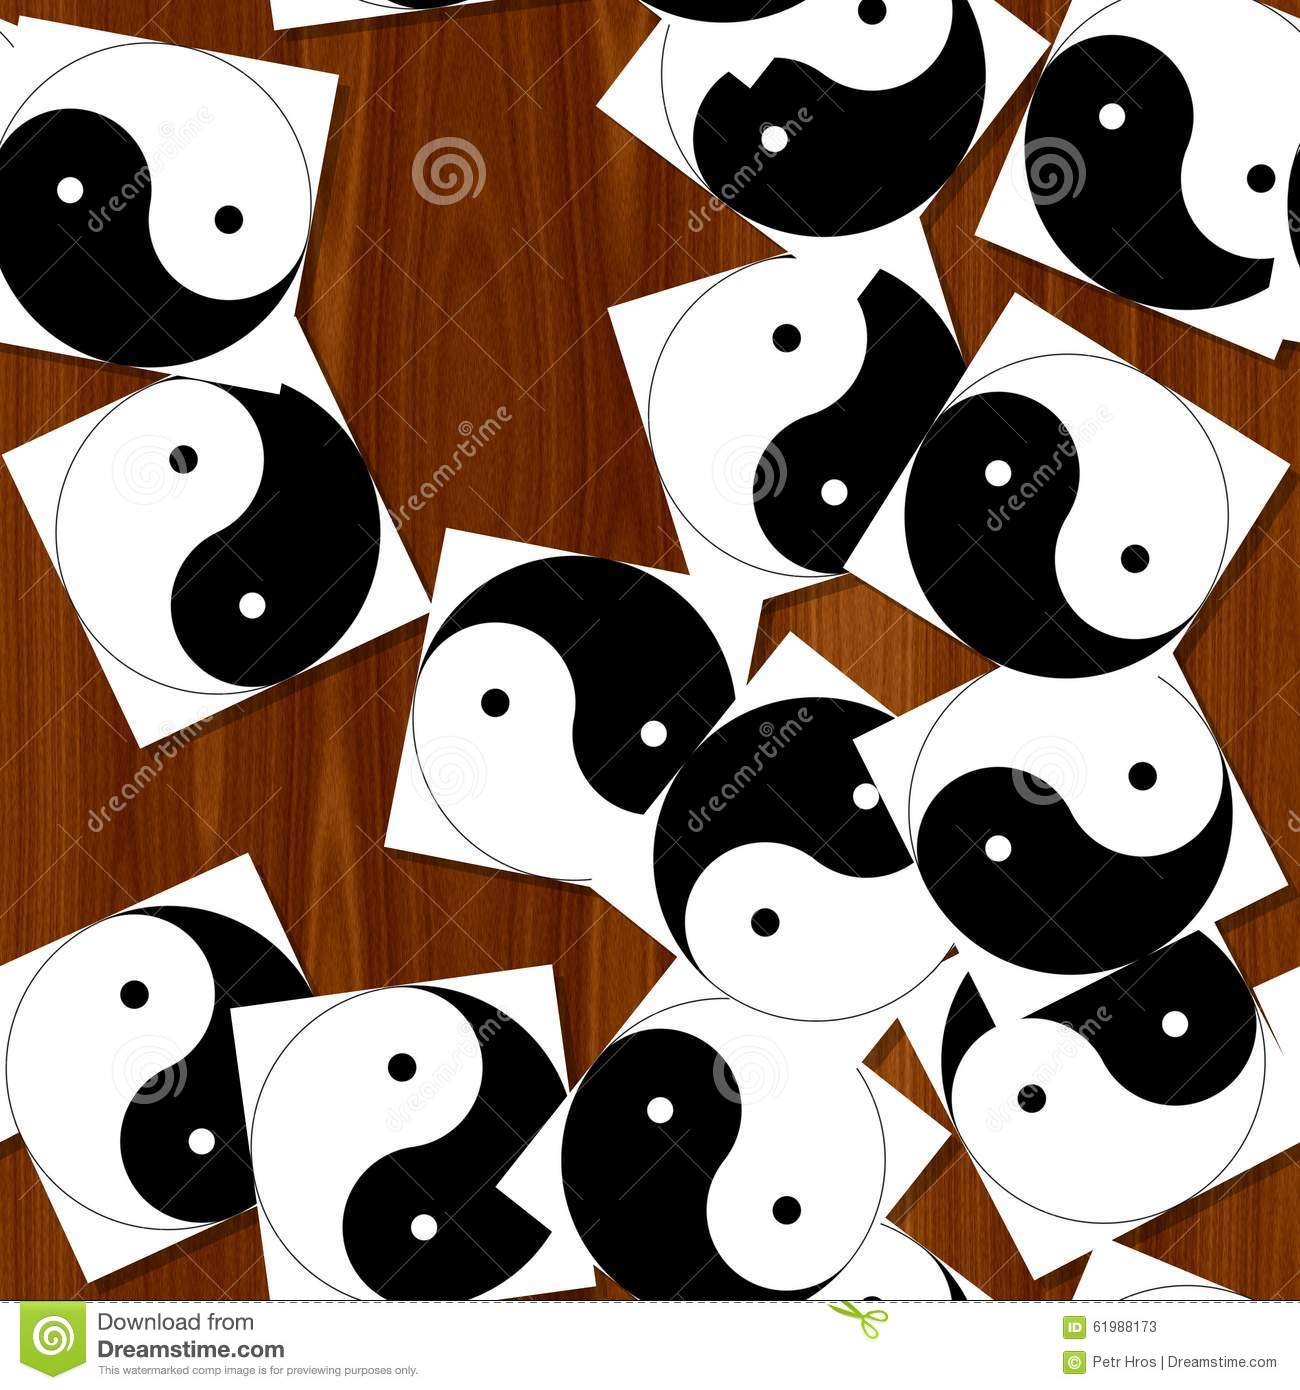 Jin jang stock illustration image 61988173 for Table yin yang